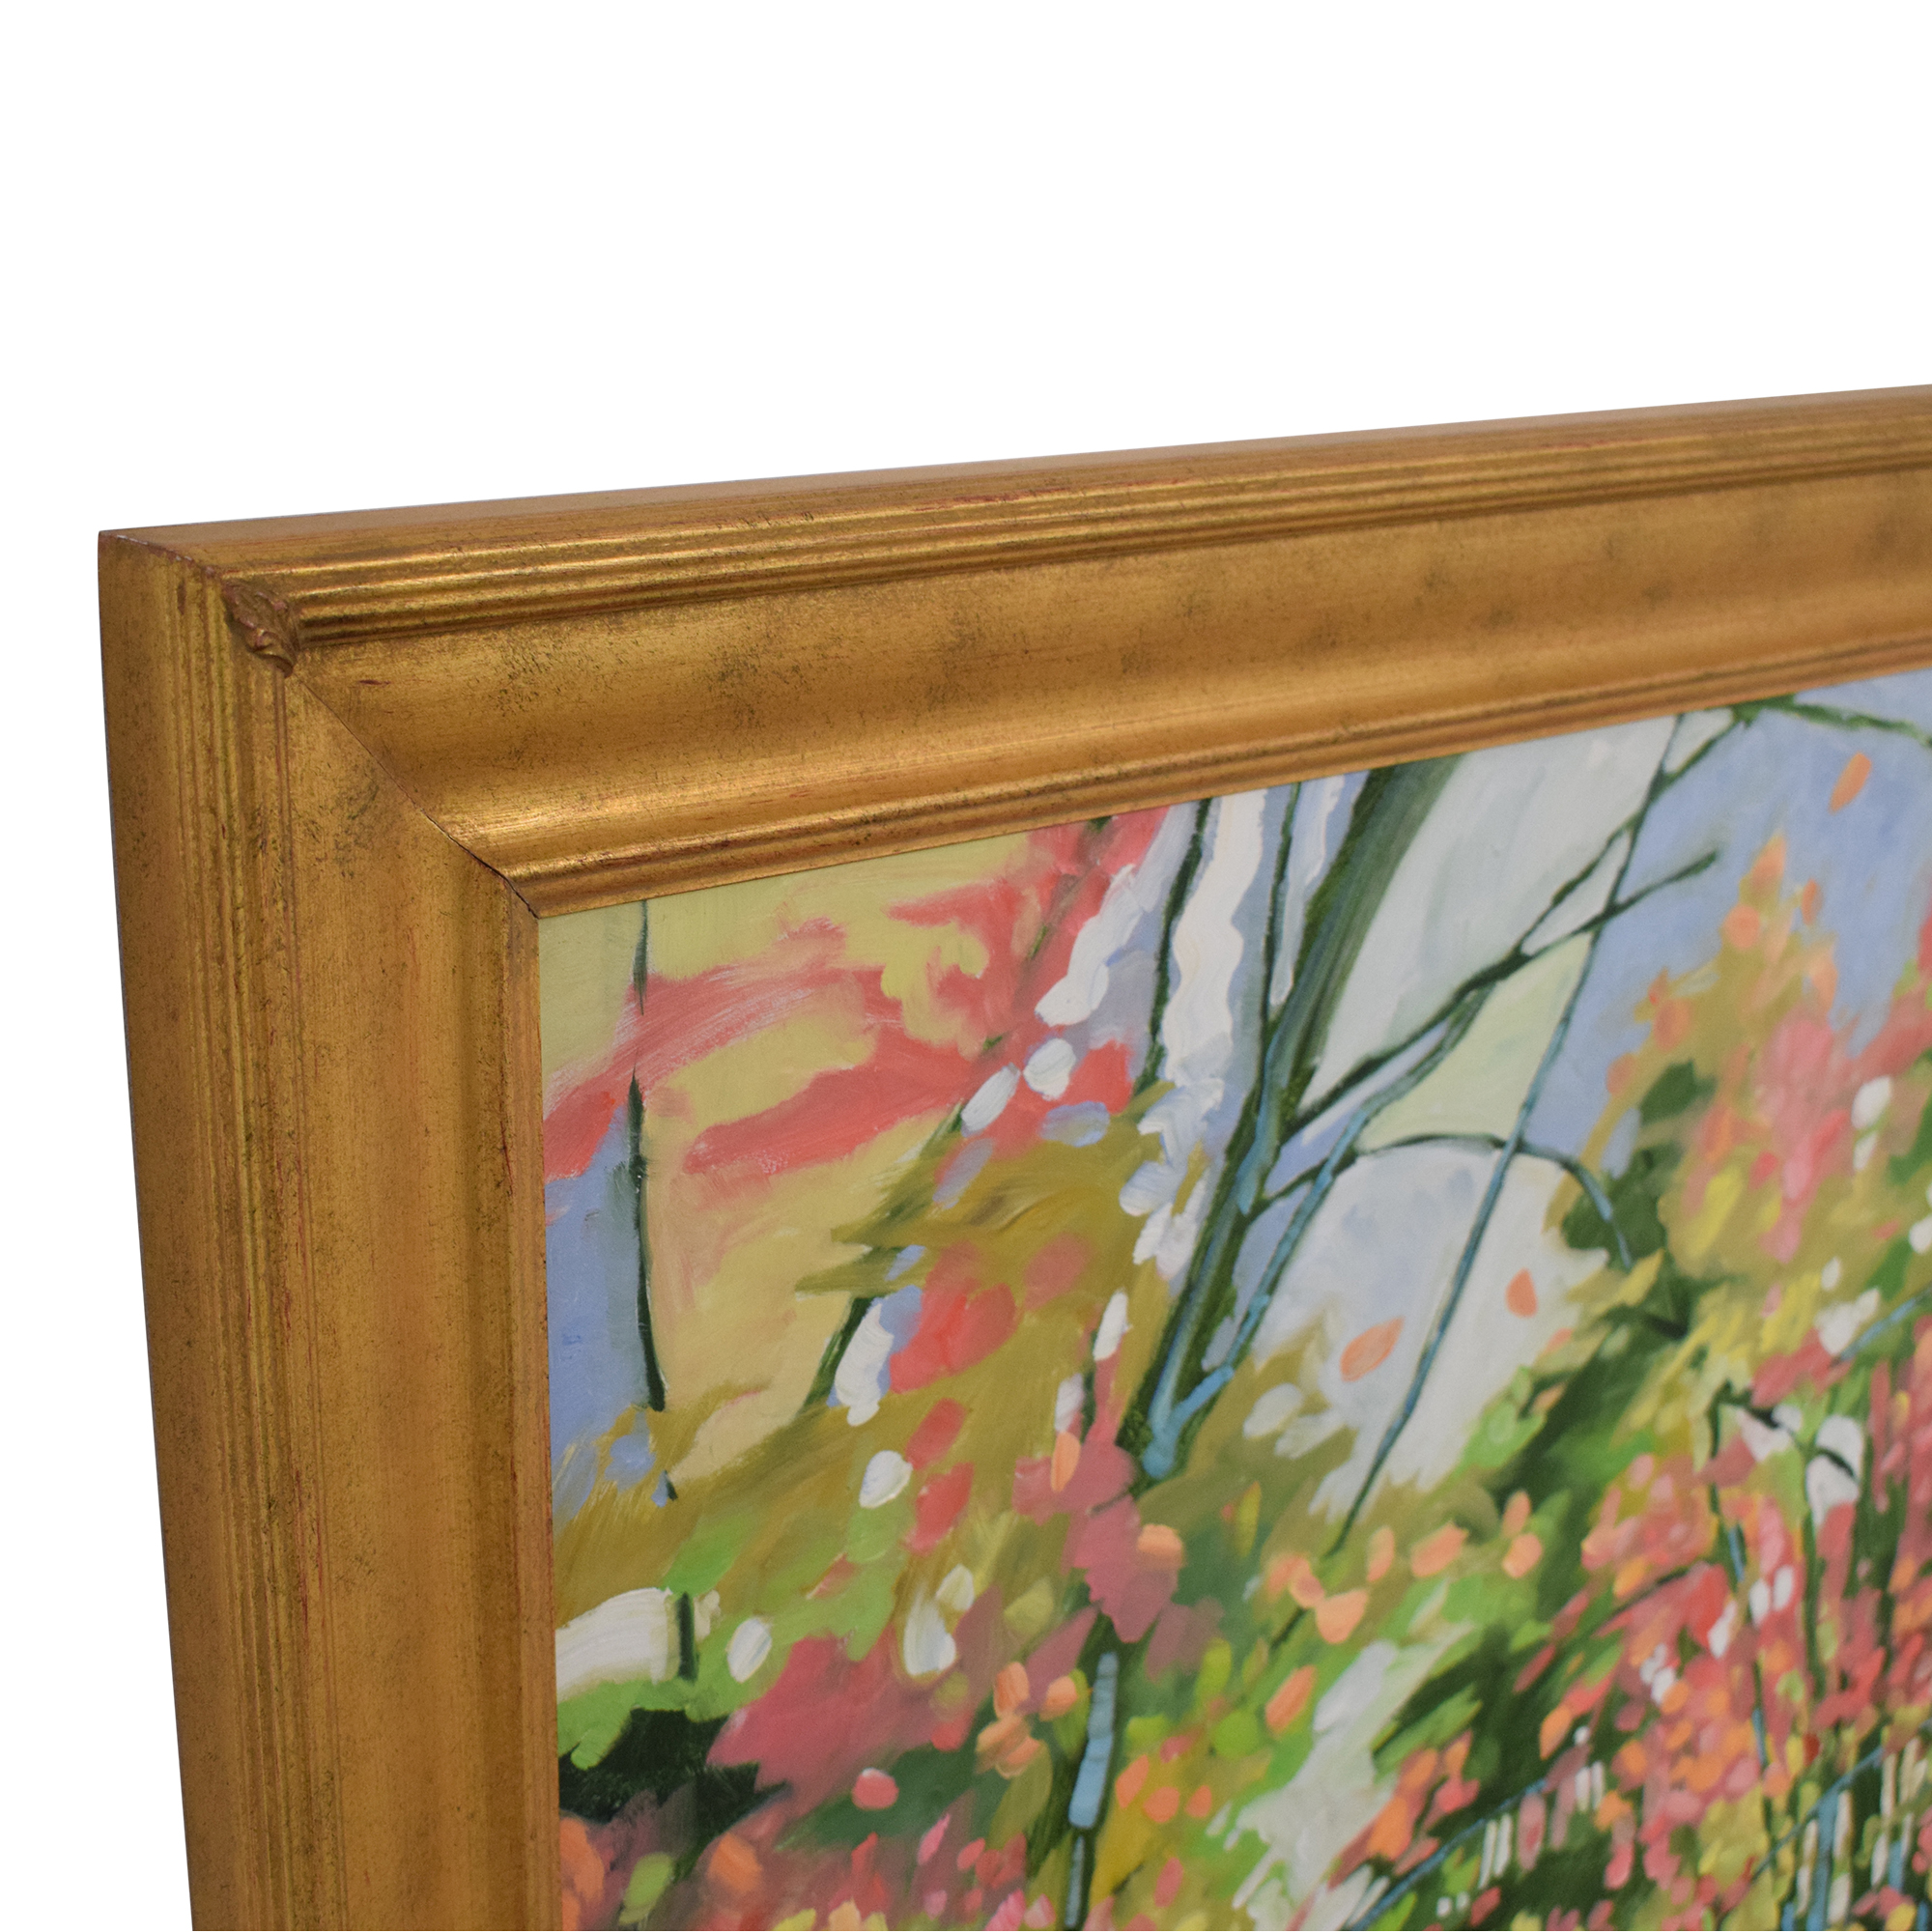 Framed Landscape Wall Art ma